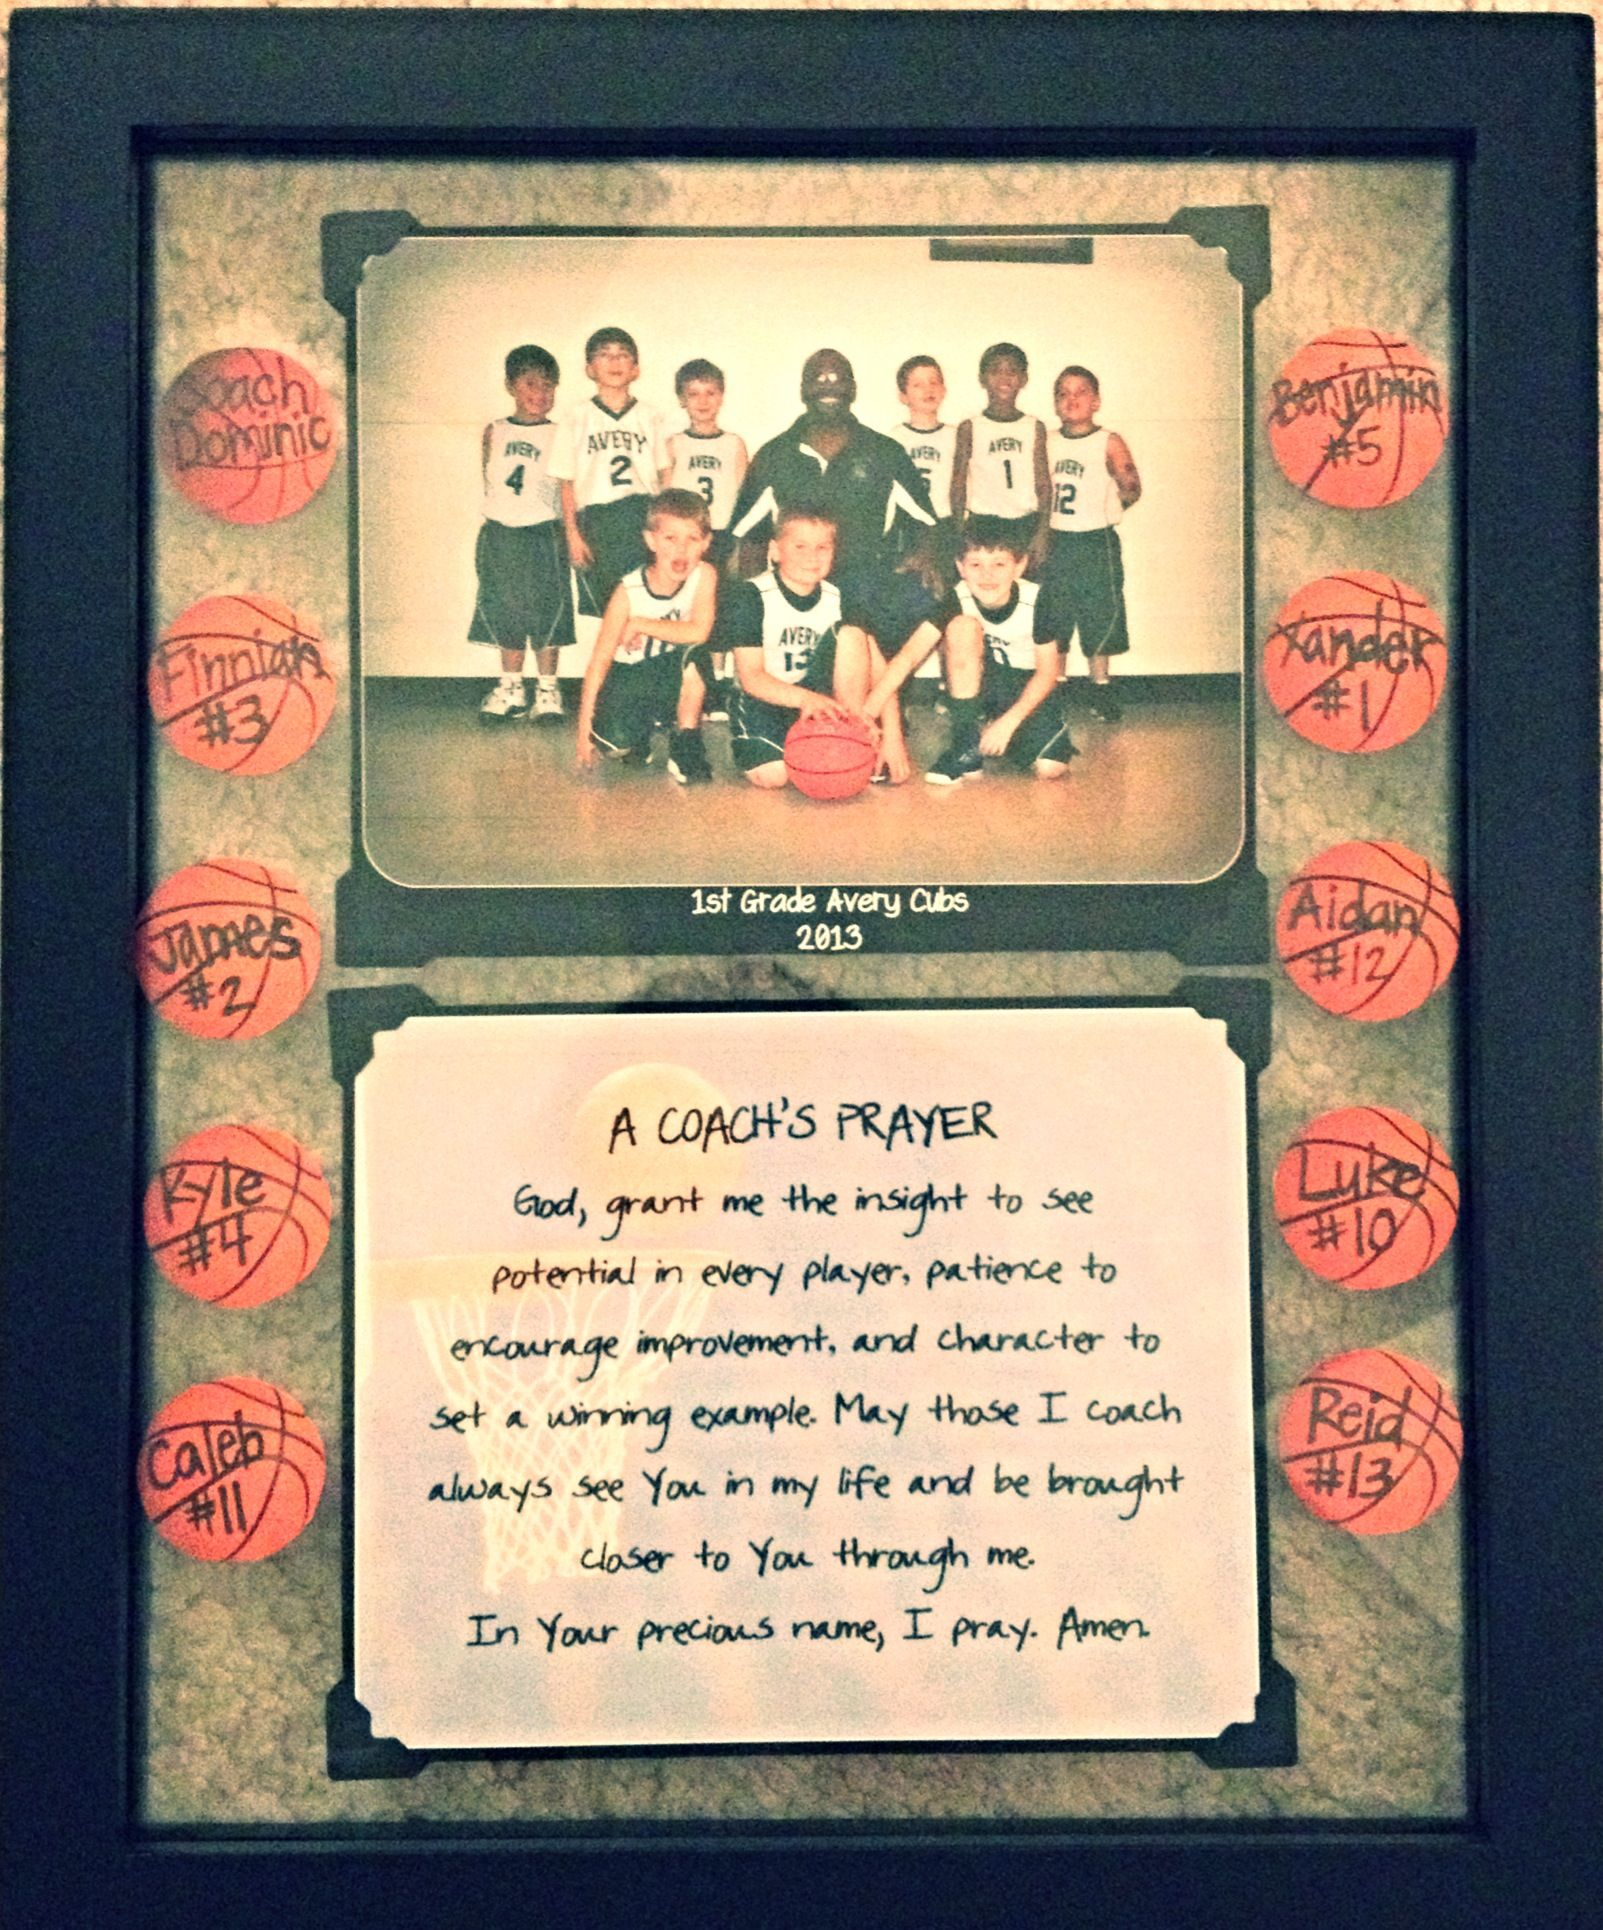 Diy coachs gift put picture coachs prayer in see through diy coachs gift put picture coachs prayer in see through frame put basketball jeuxipadfo Gallery